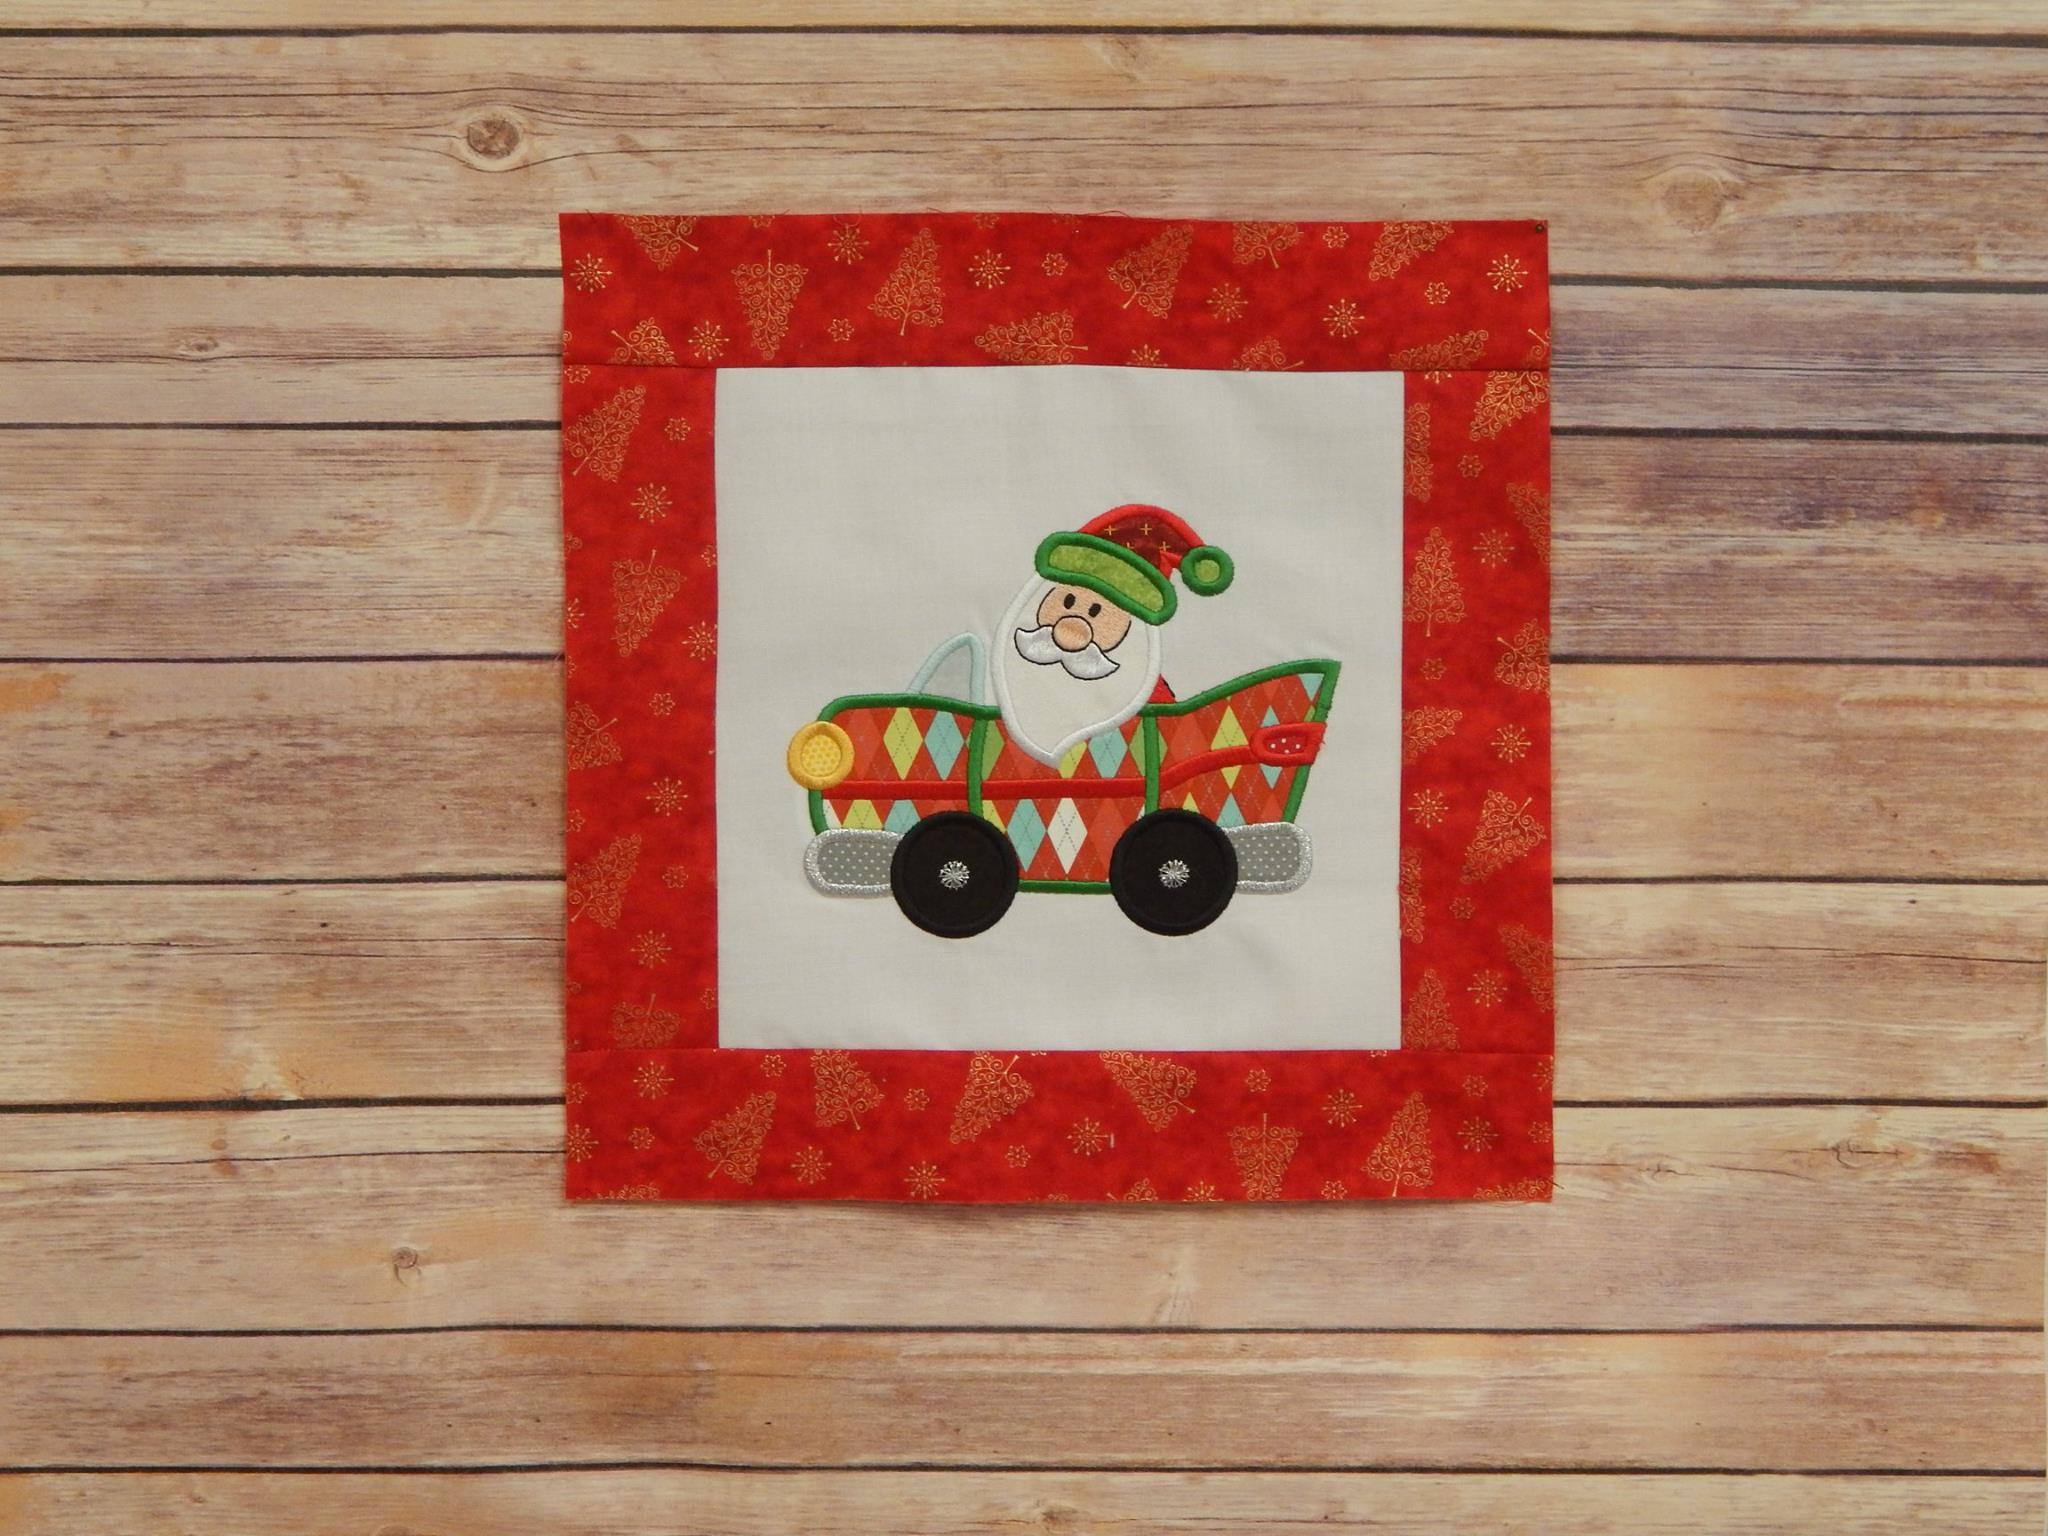 designs-by-juju-christmas-on-wheels-3